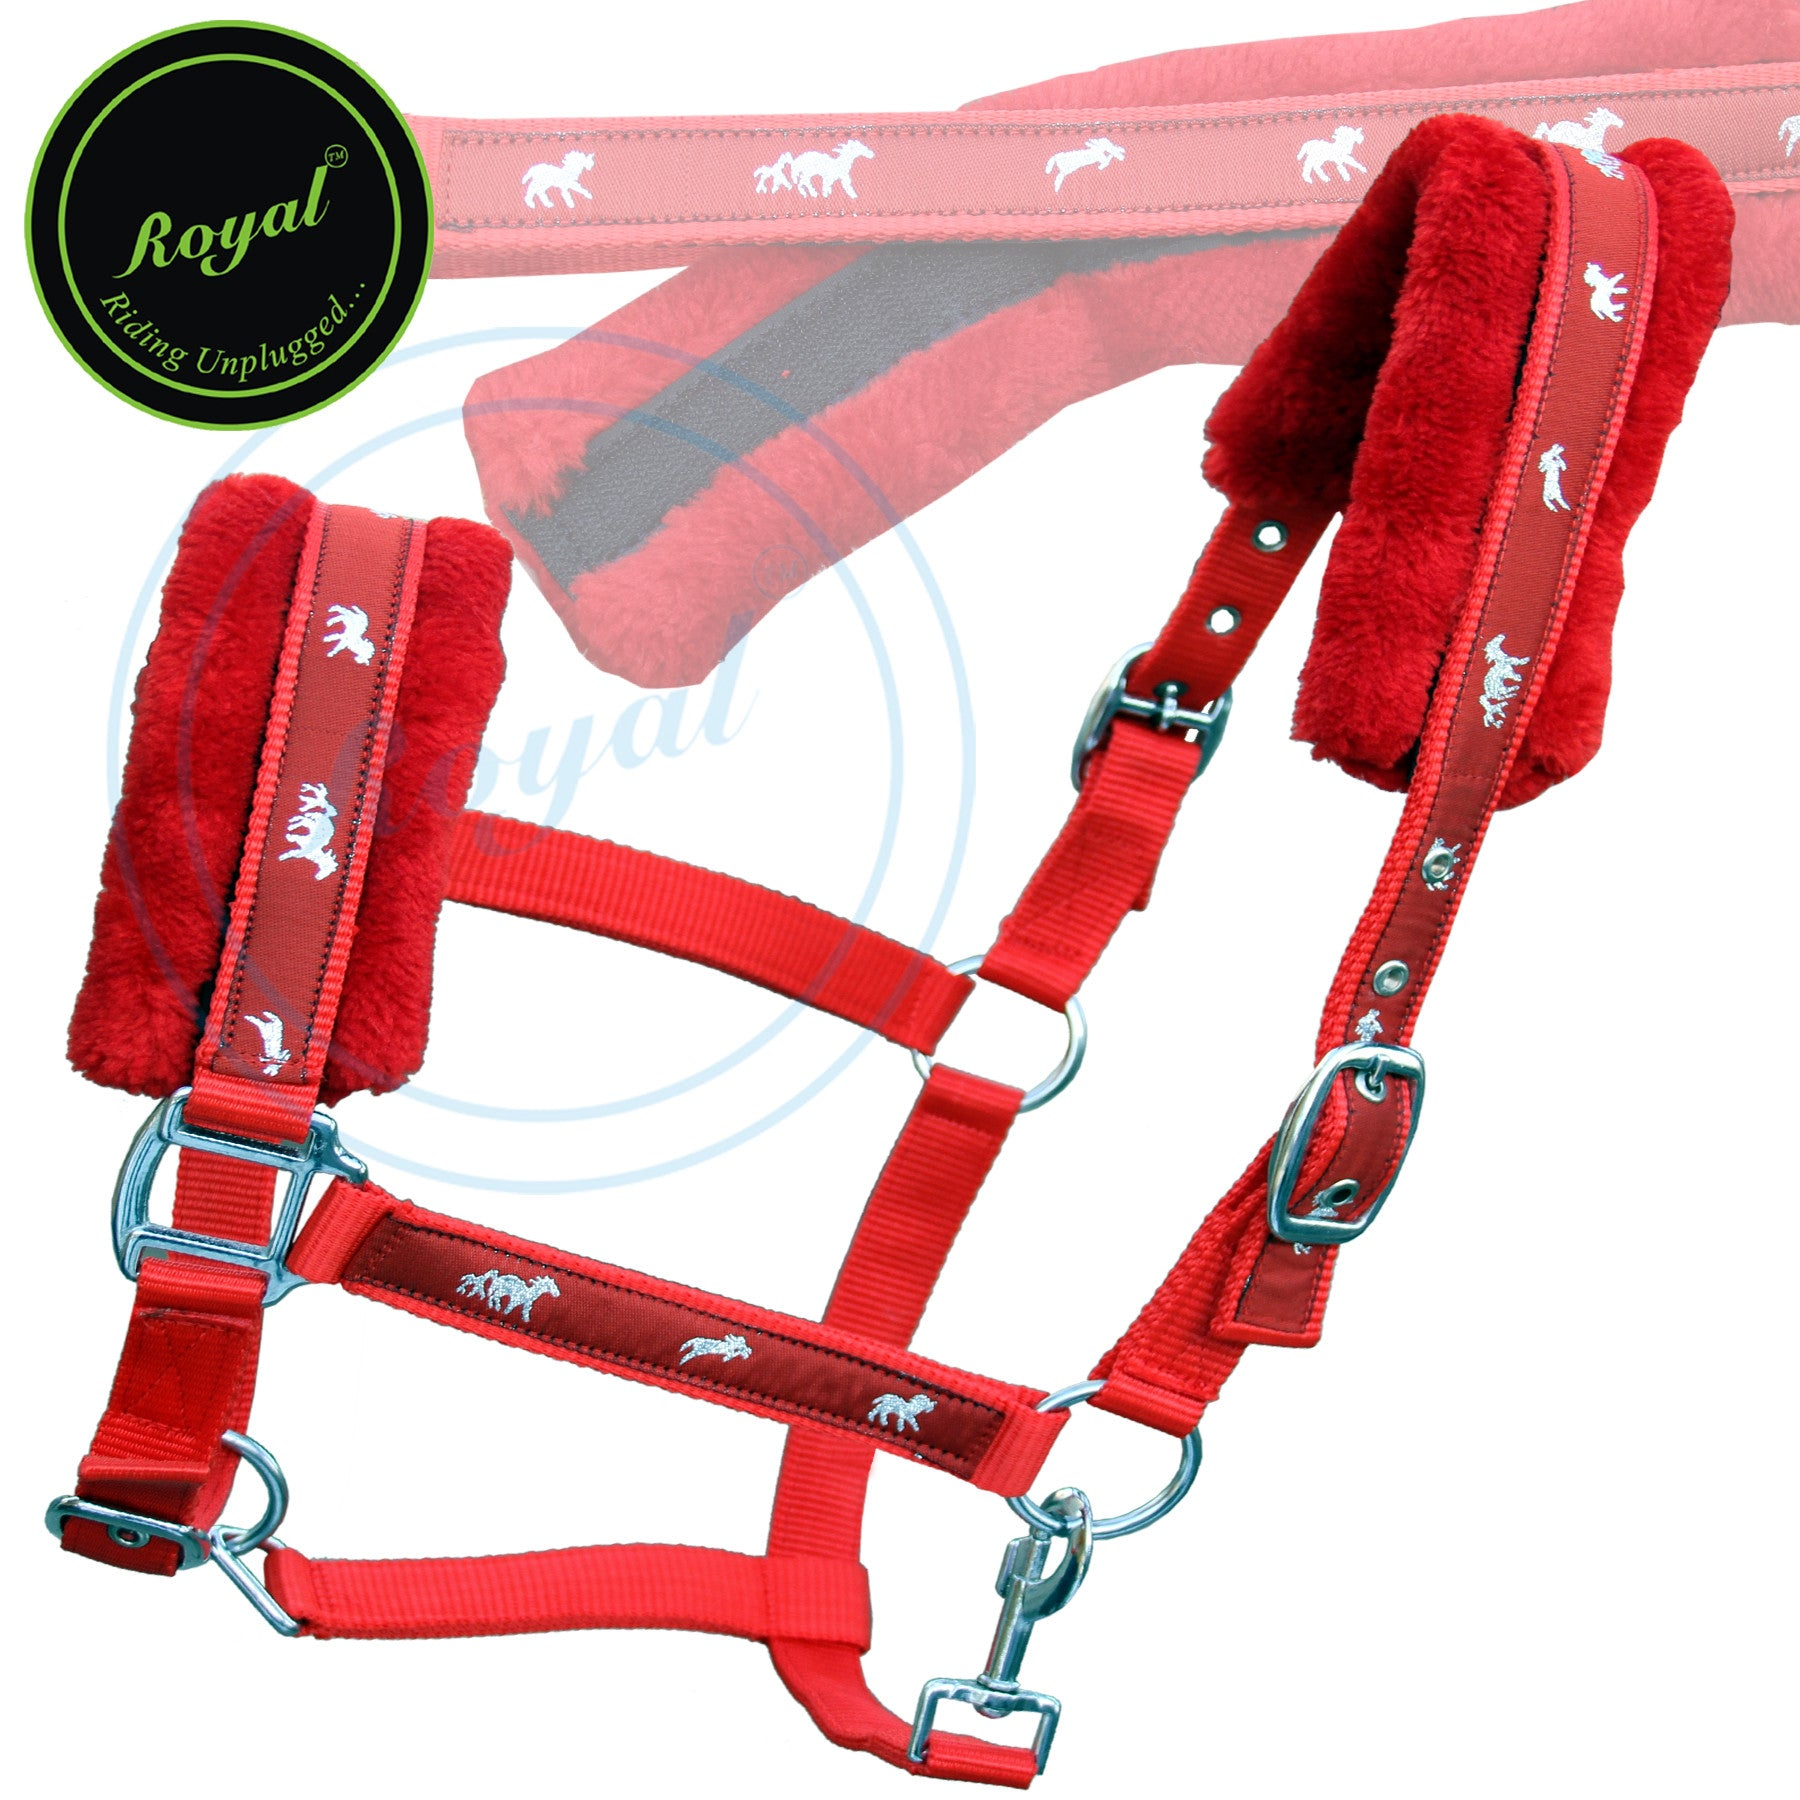 Fancy Horse Halters-Fleece Padded Comfort Nylon Halters-Bridles & Reins